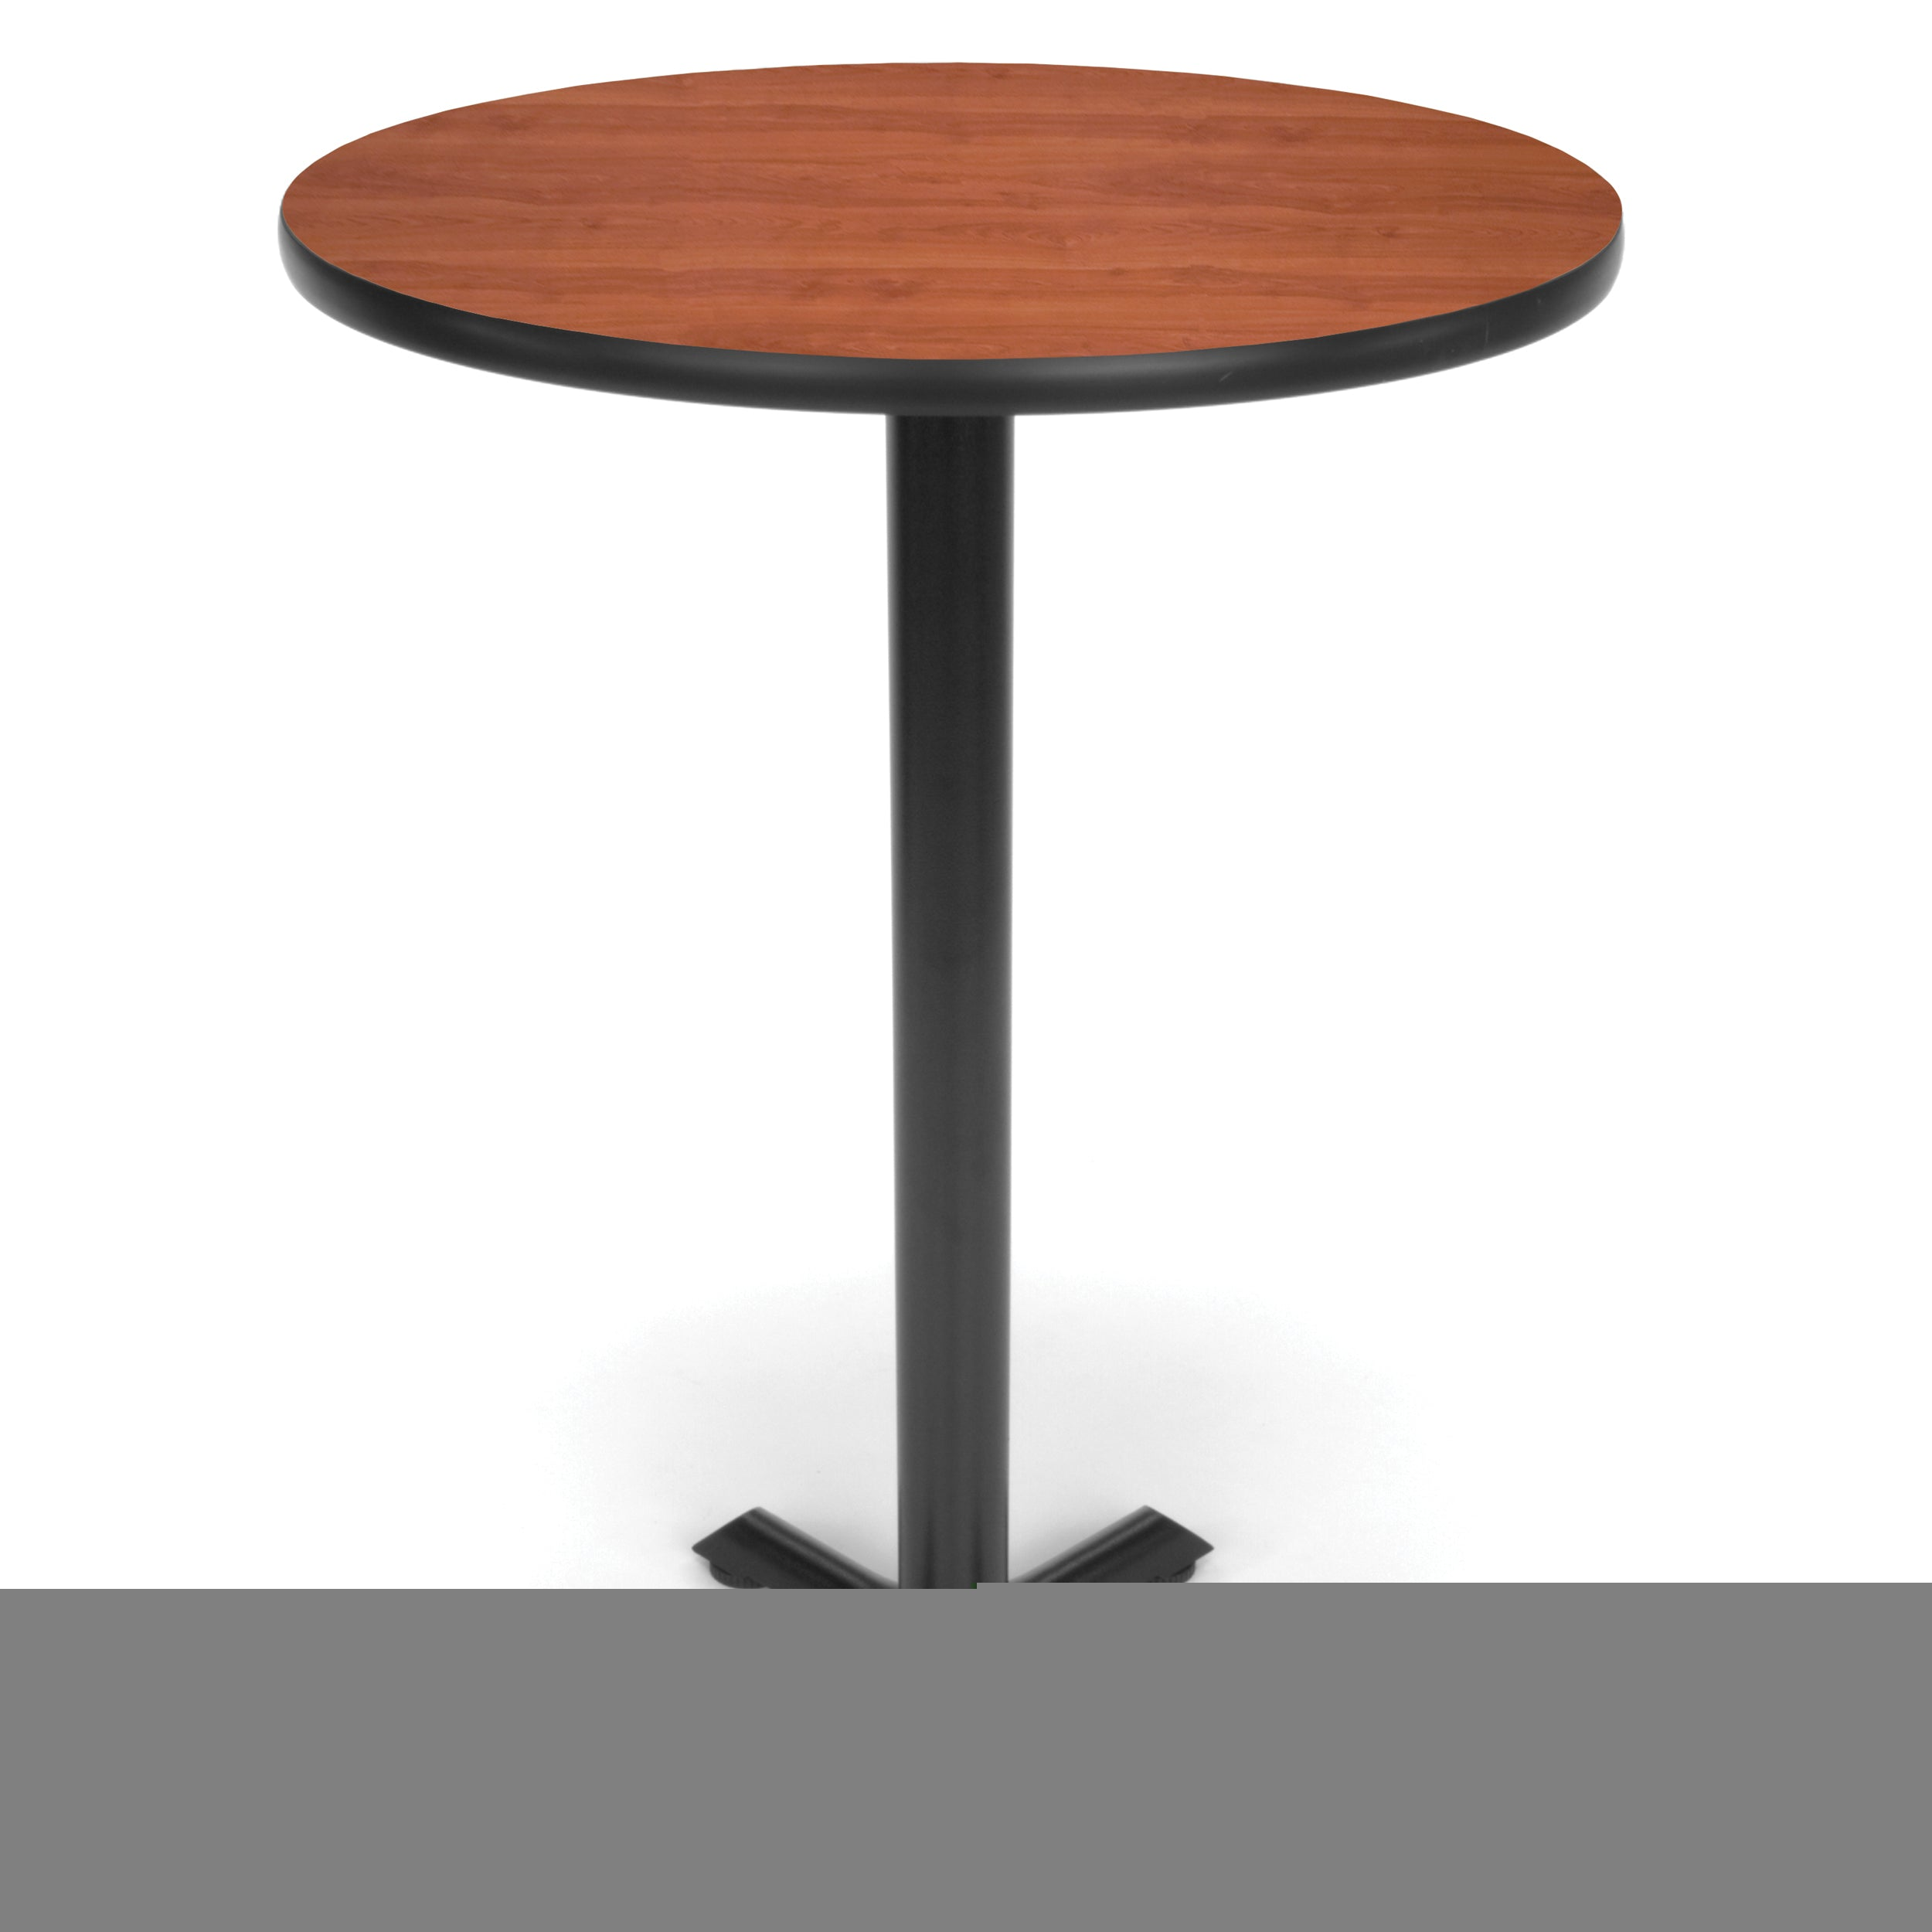 Ofminc Model XTC30RD Round Cafe Height Table with X Base 30 Inch